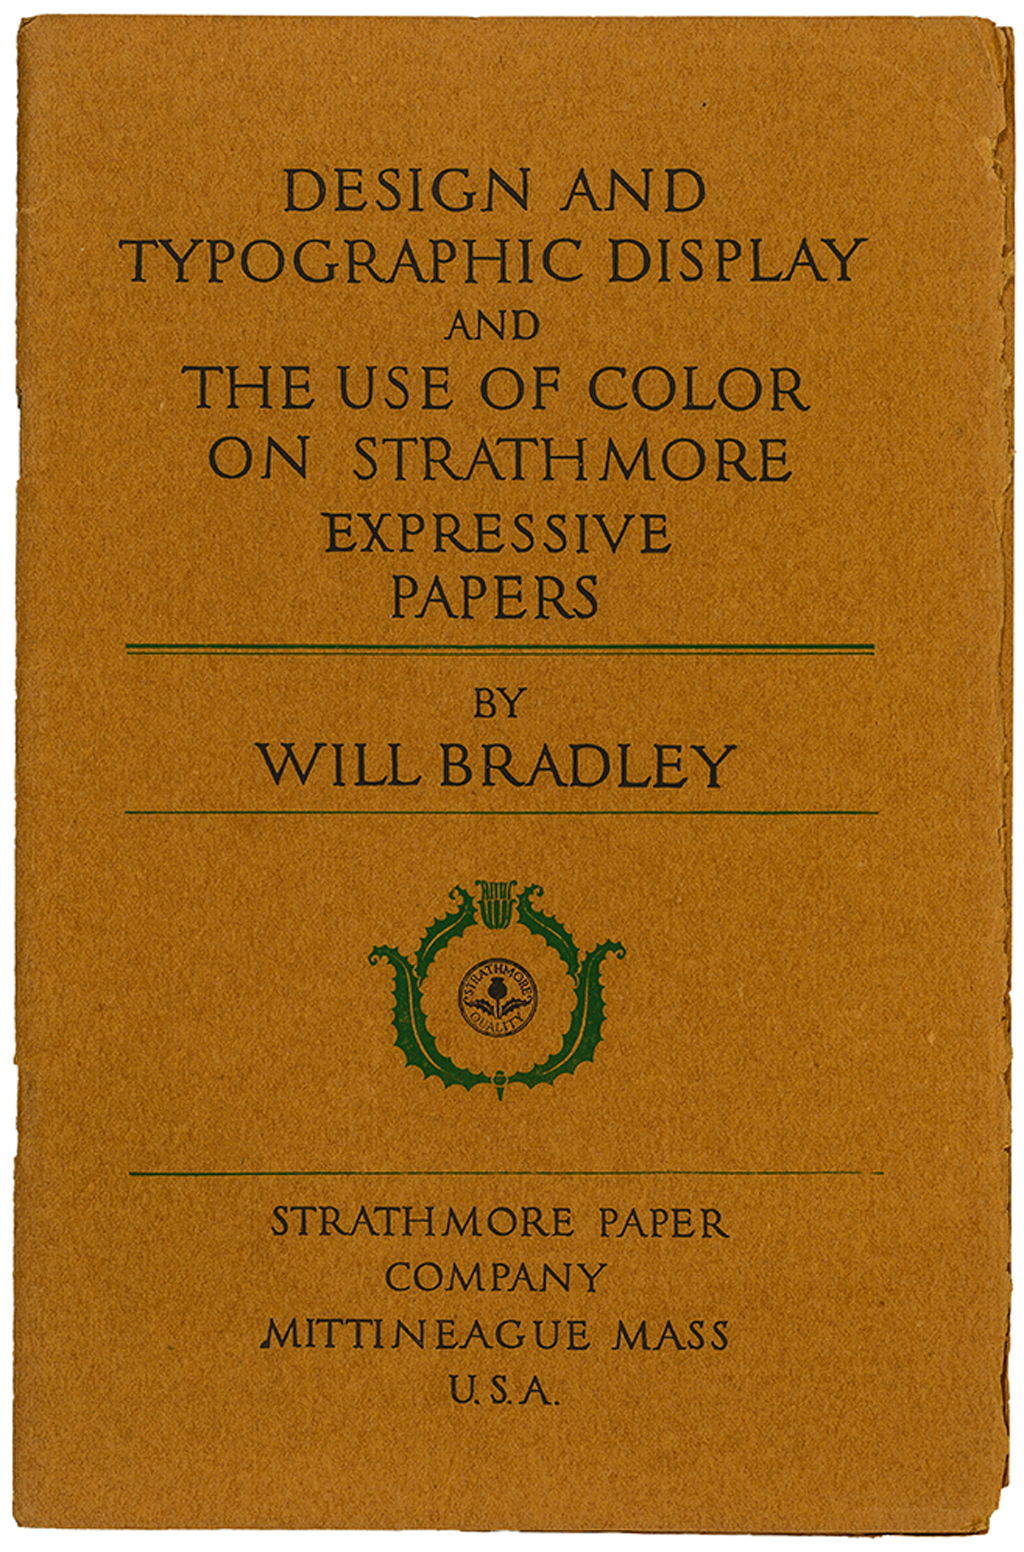 Design and Typographic Display and the Use of Color on Strathmore Expressive Papers by Will Bradley (Mittineague: Strathmore Paper Co., 1917). Design by Will Bradley. Photograph by Vincent Trinacria.